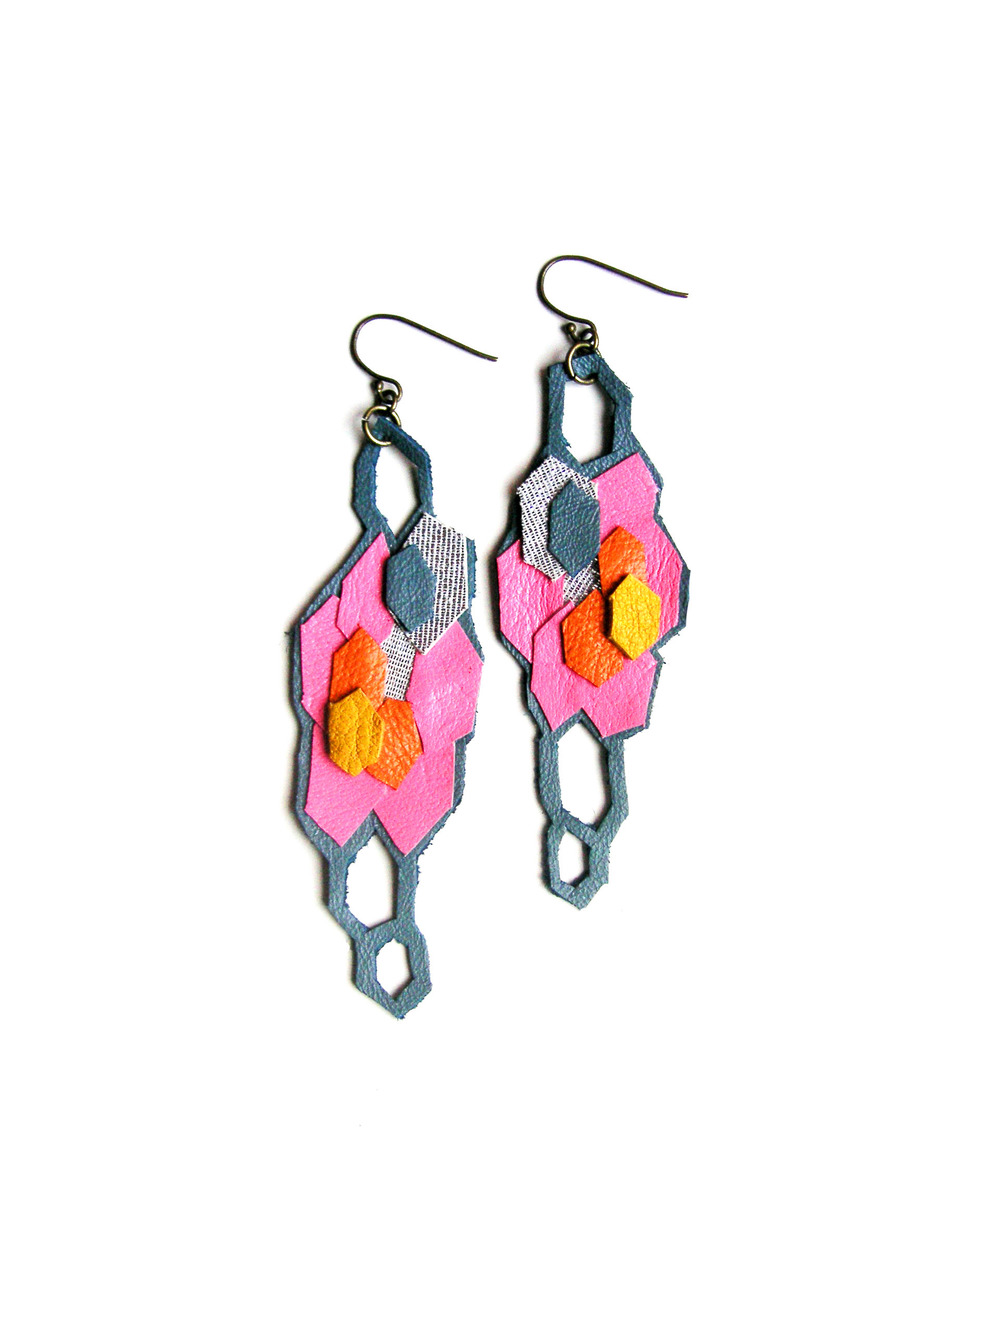 Geometric Leather Earrings Neon Hexagons.jpg